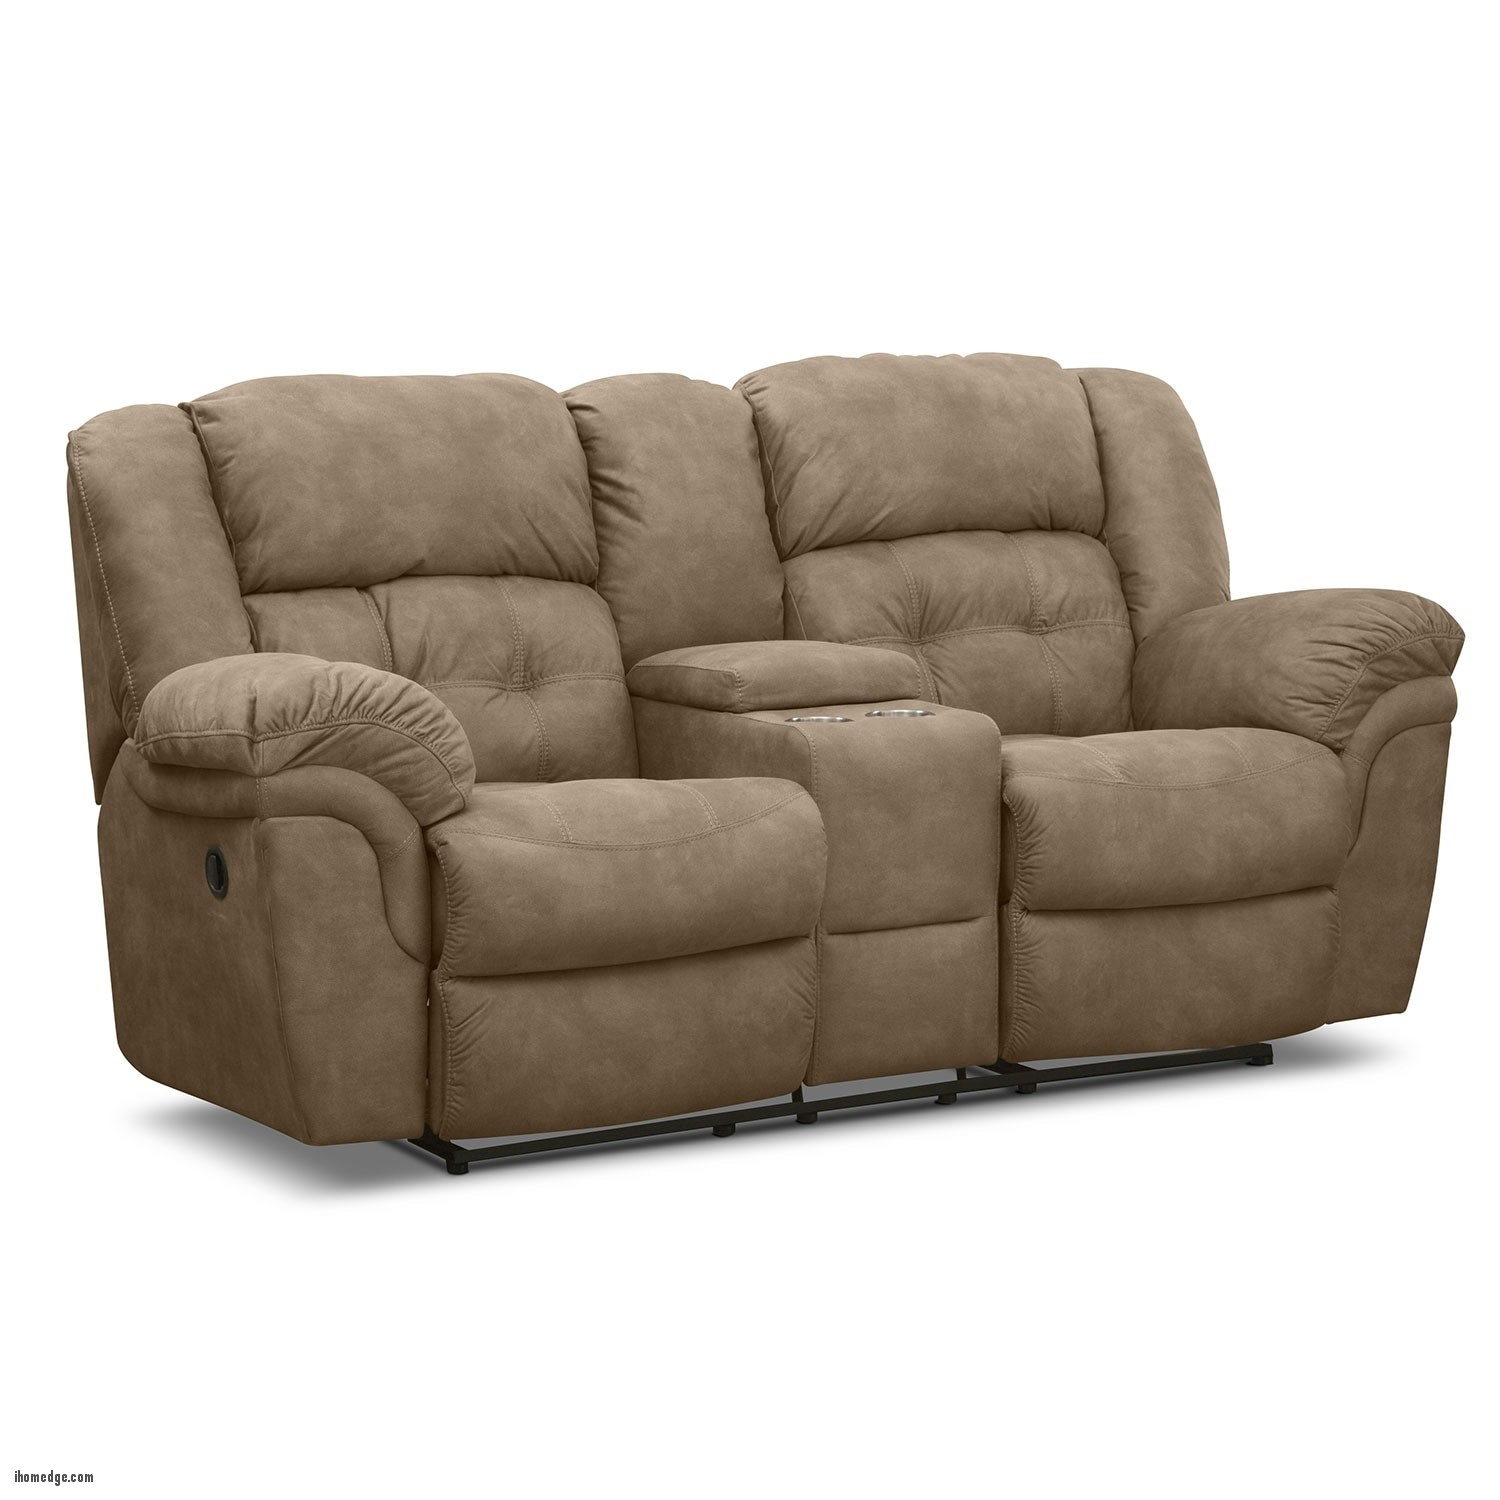 design loveseat gorgeous interesting gray fabric design rocking loveseat with power  reclining loveseat KLRGPOZ